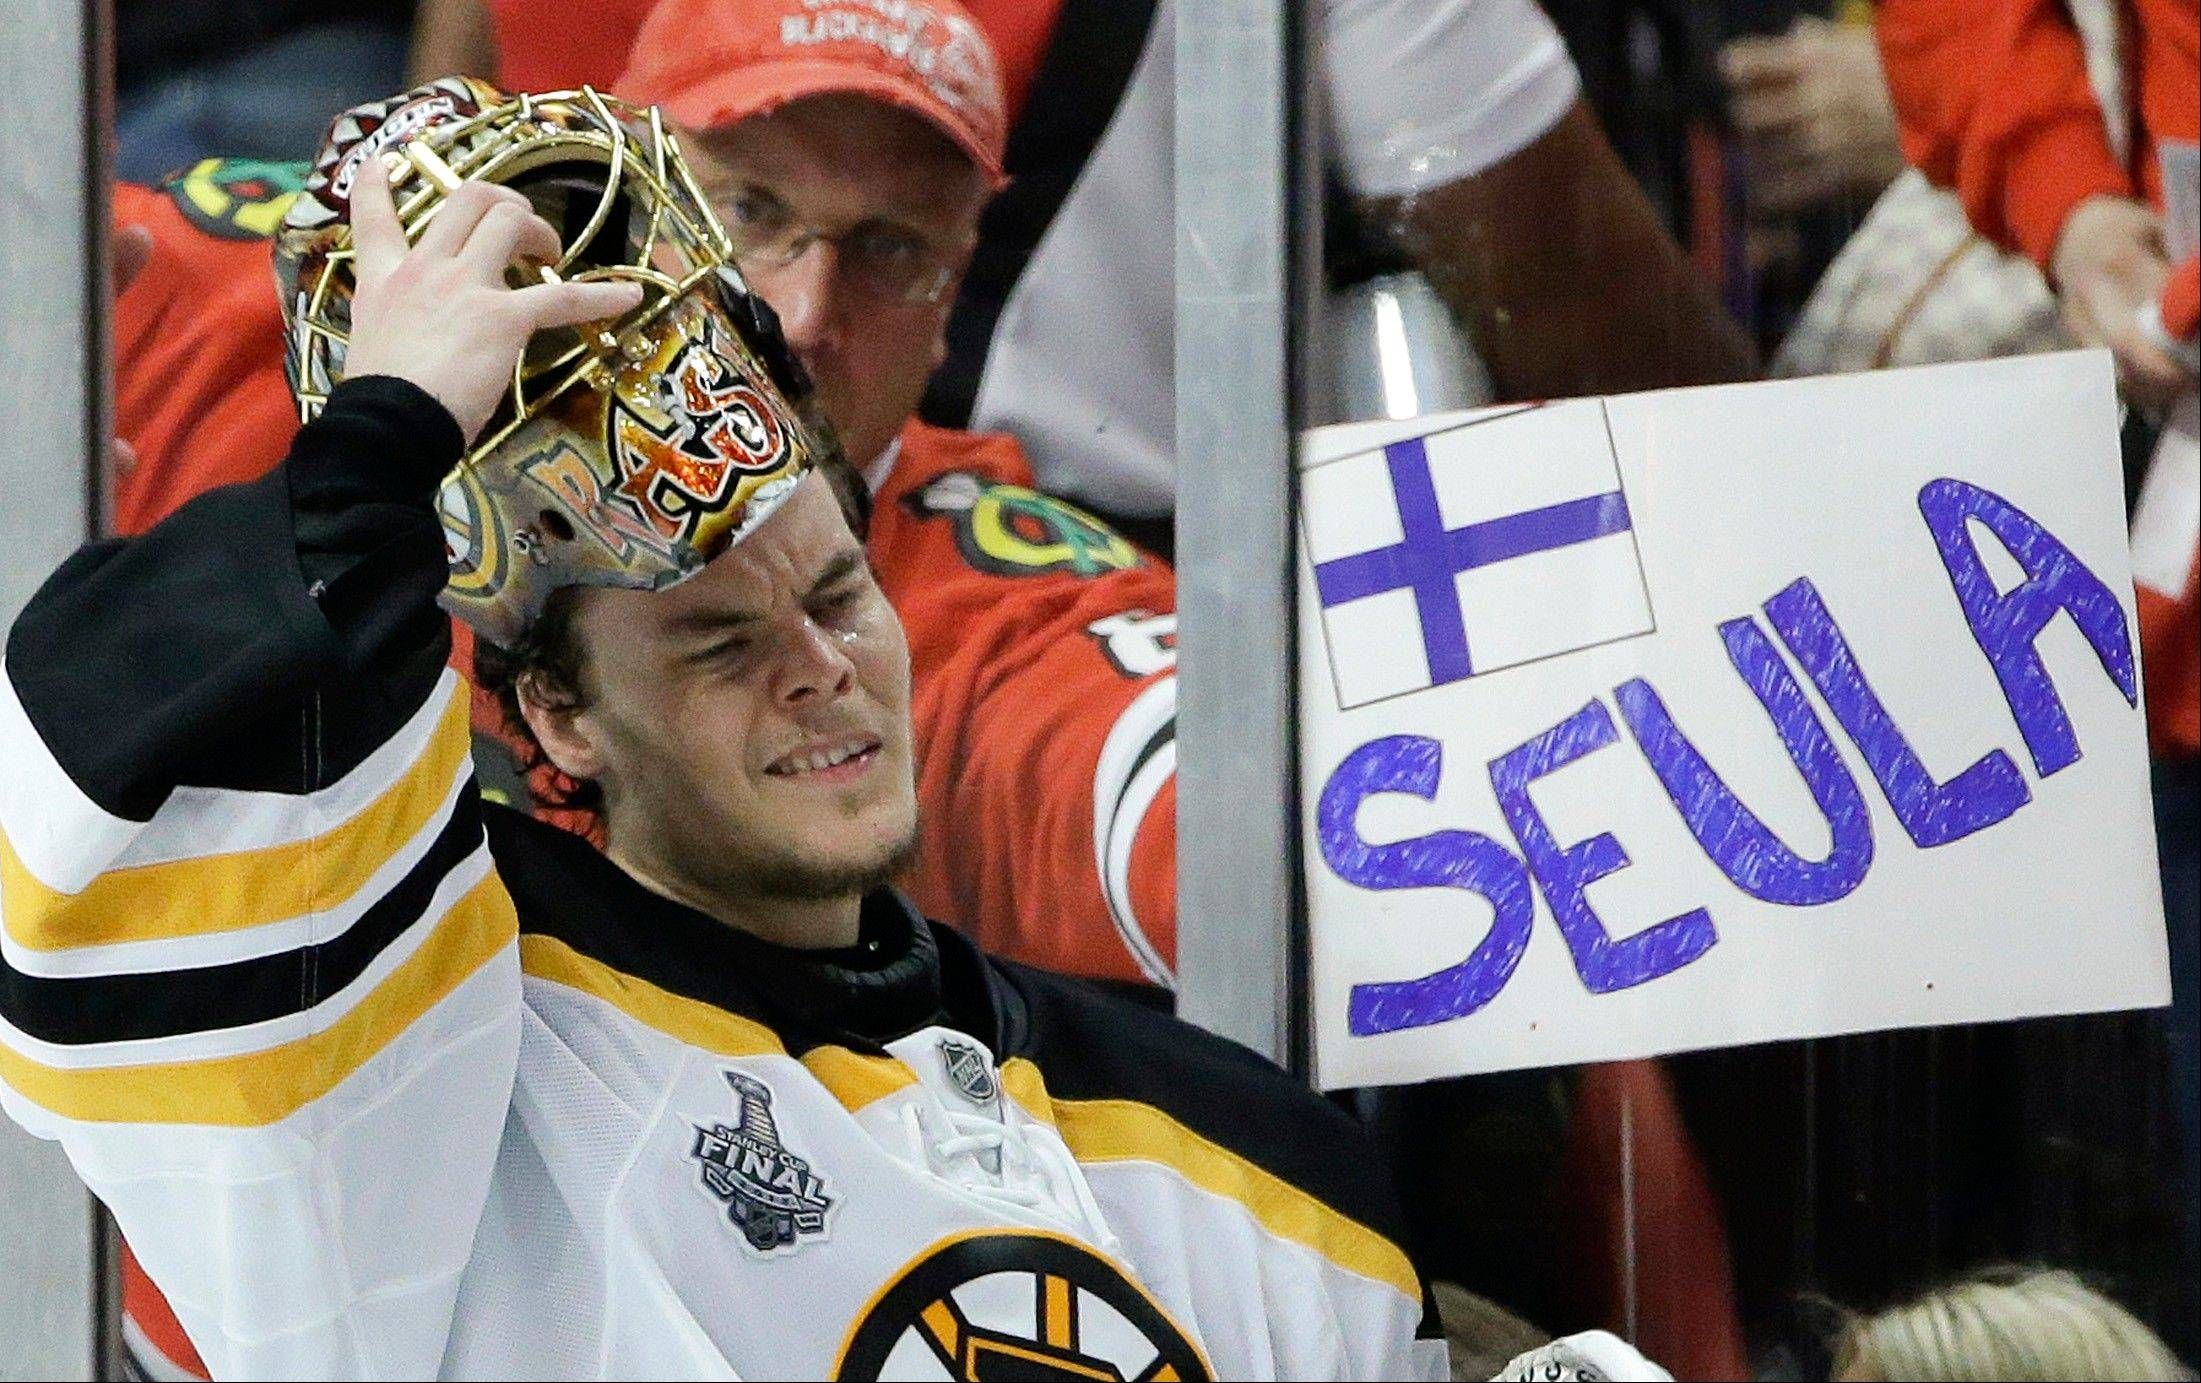 Boston Bruins goalie Tuukka Rask (40) puts his mask back on after a break in the third period against the Chicago Blackhawks as a fan holds up a sign in Finnish calling Rask a hockey sieve in English, during Game 5 of the NHL hockey Stanley Cup Finals, Saturday, June 22, 2013, in Chicago.